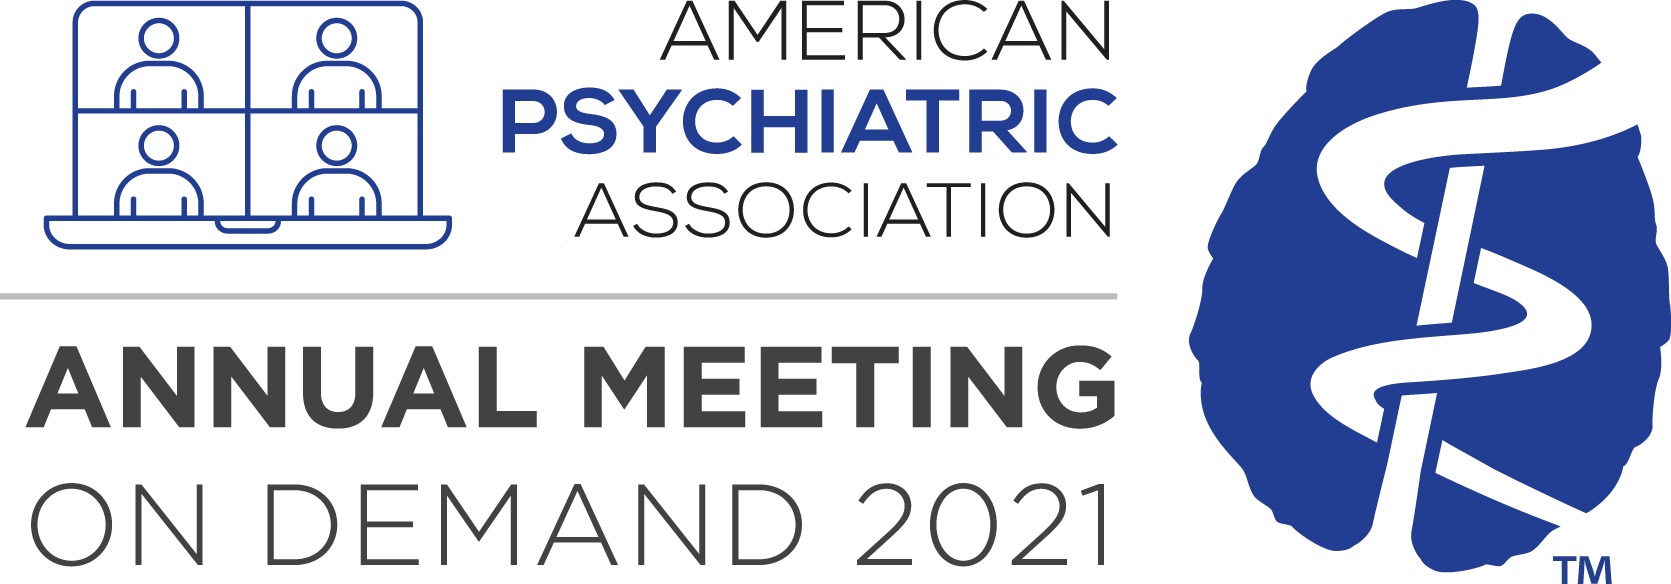 American Psychiatric Association Annual Meeting On Demand 2020